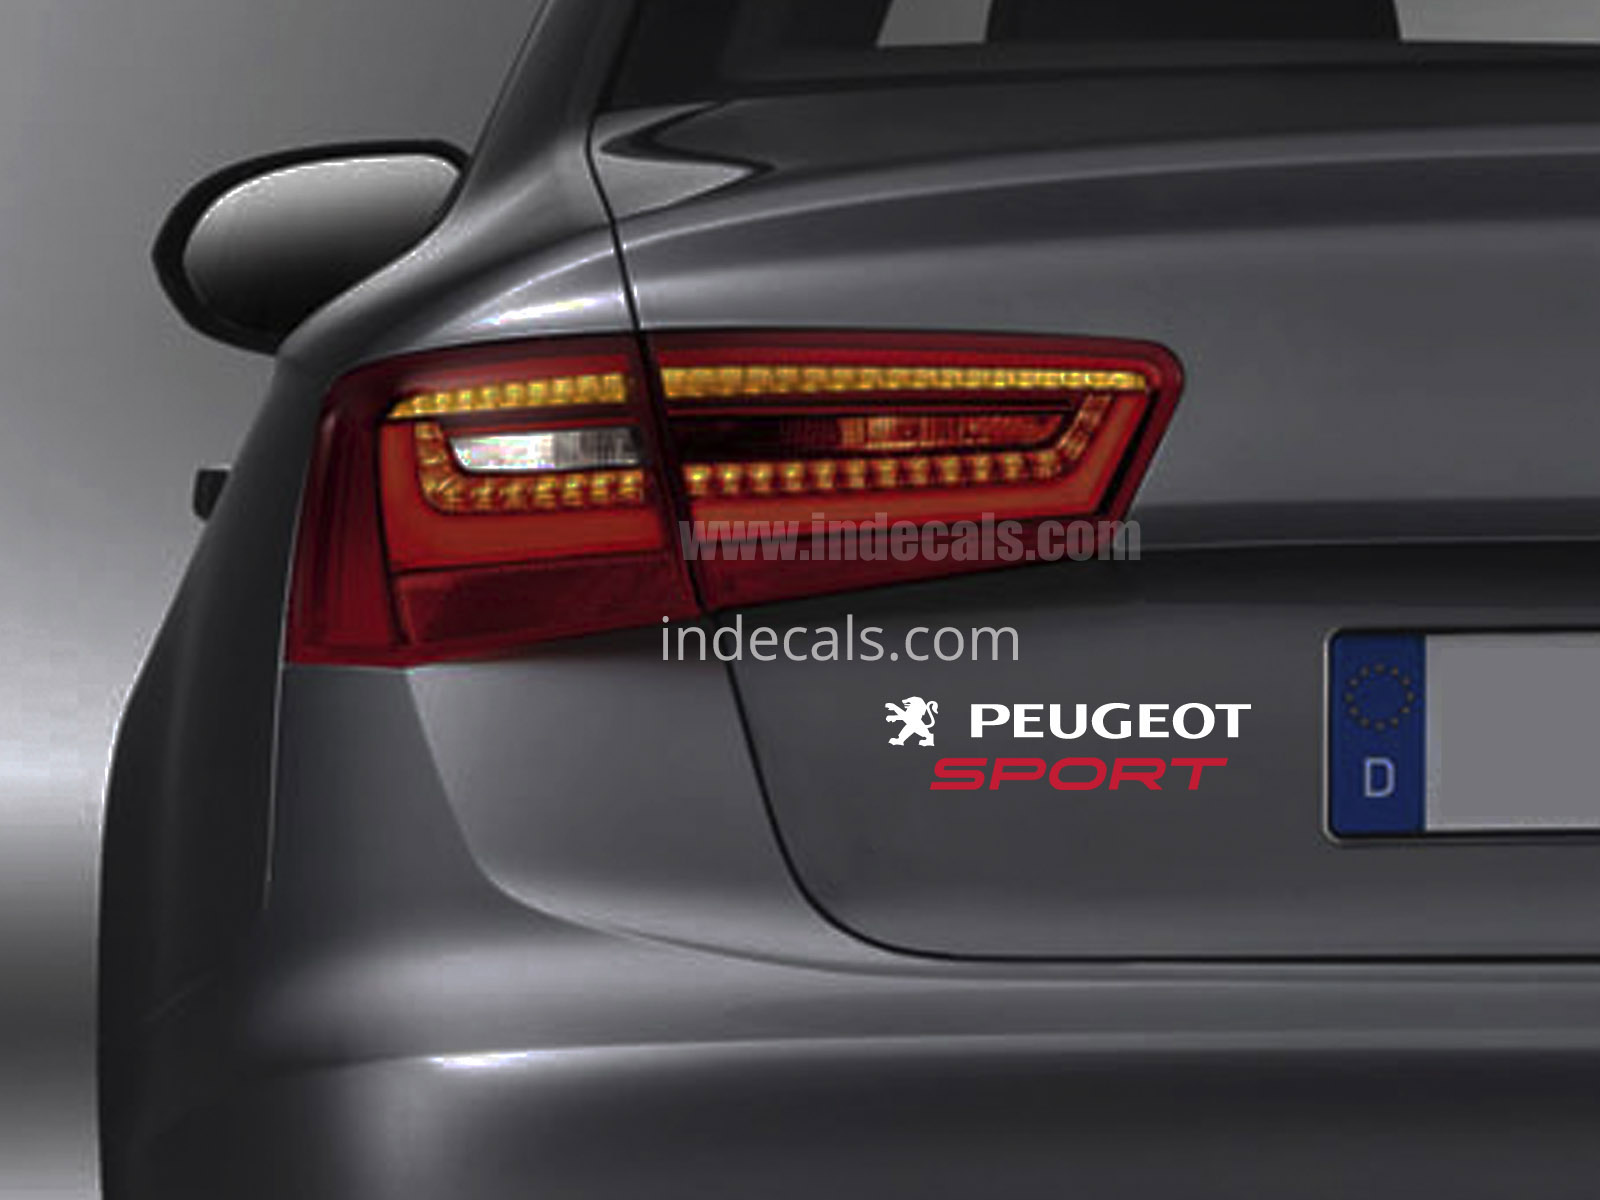 1 x Peugeot Sports Sticker for Trunk - White & Red